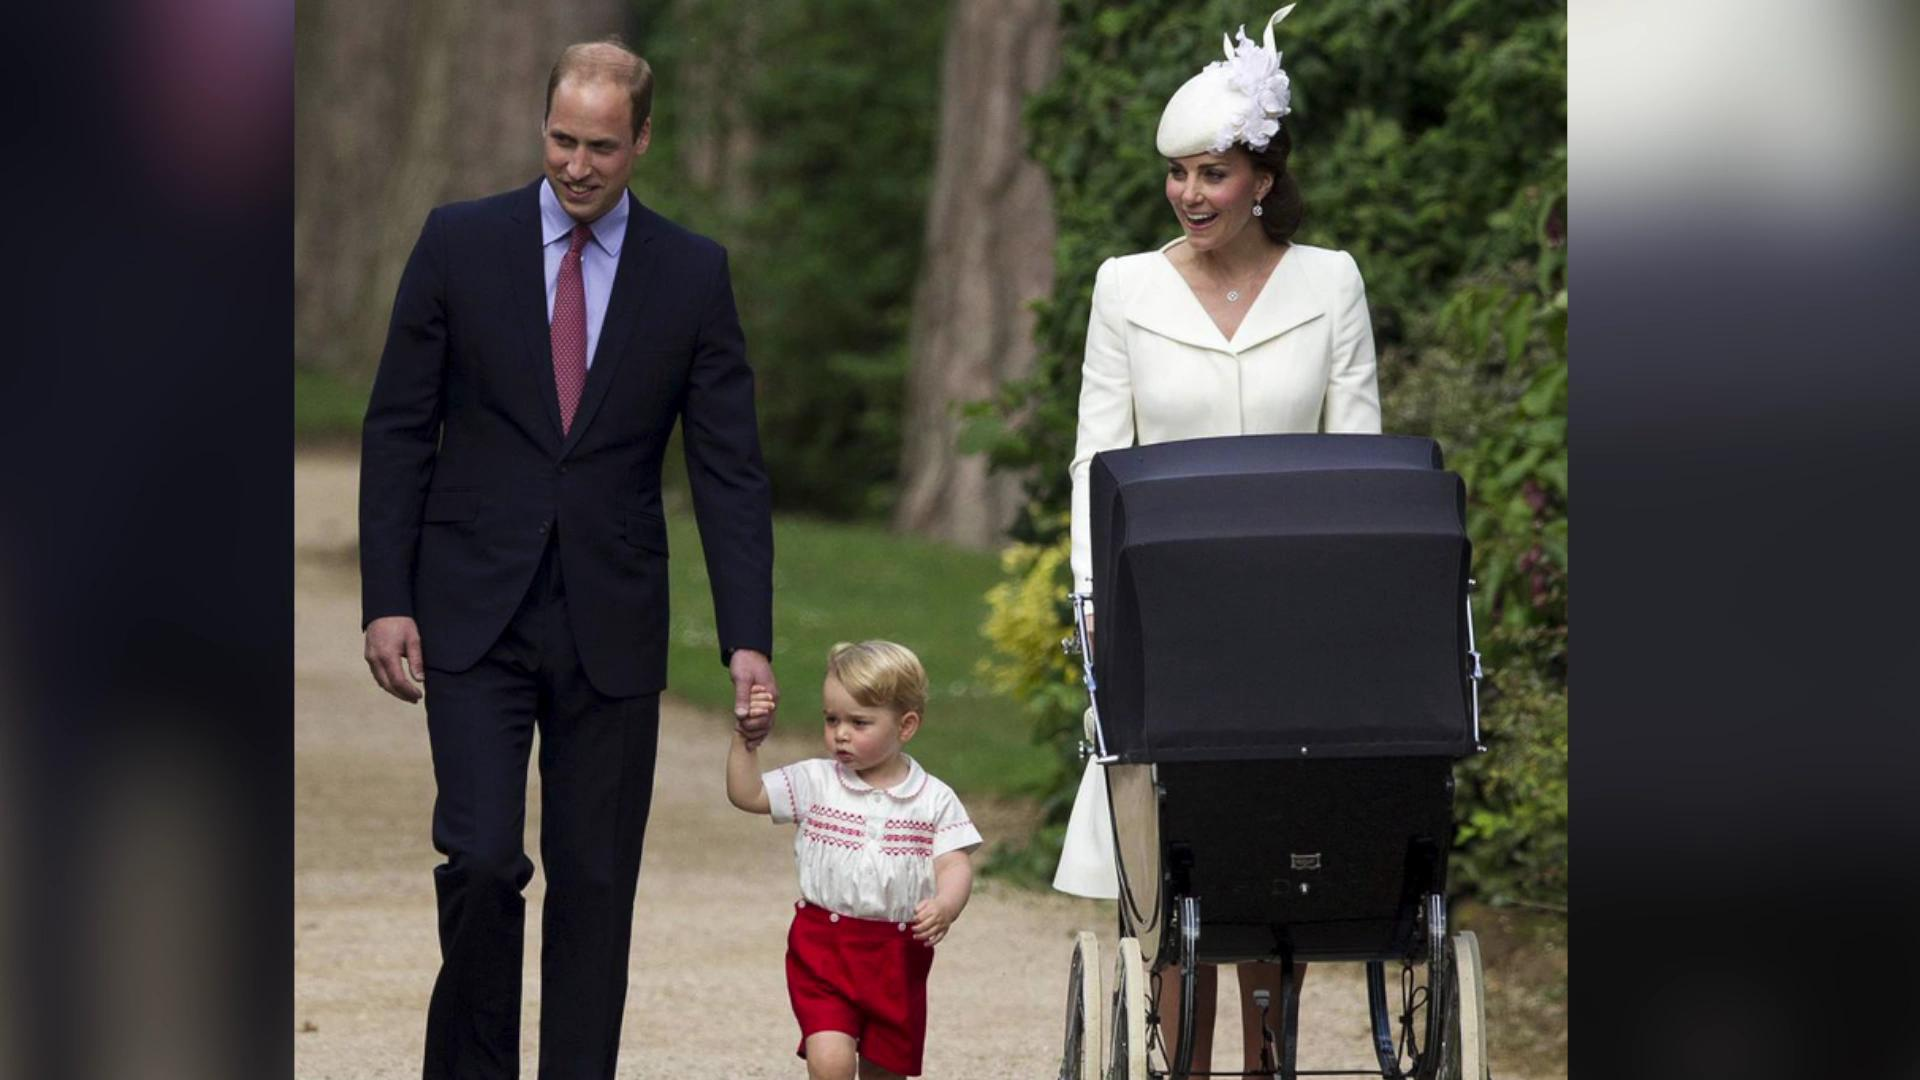 Prince George steals the show at Princess Charlotte's christening